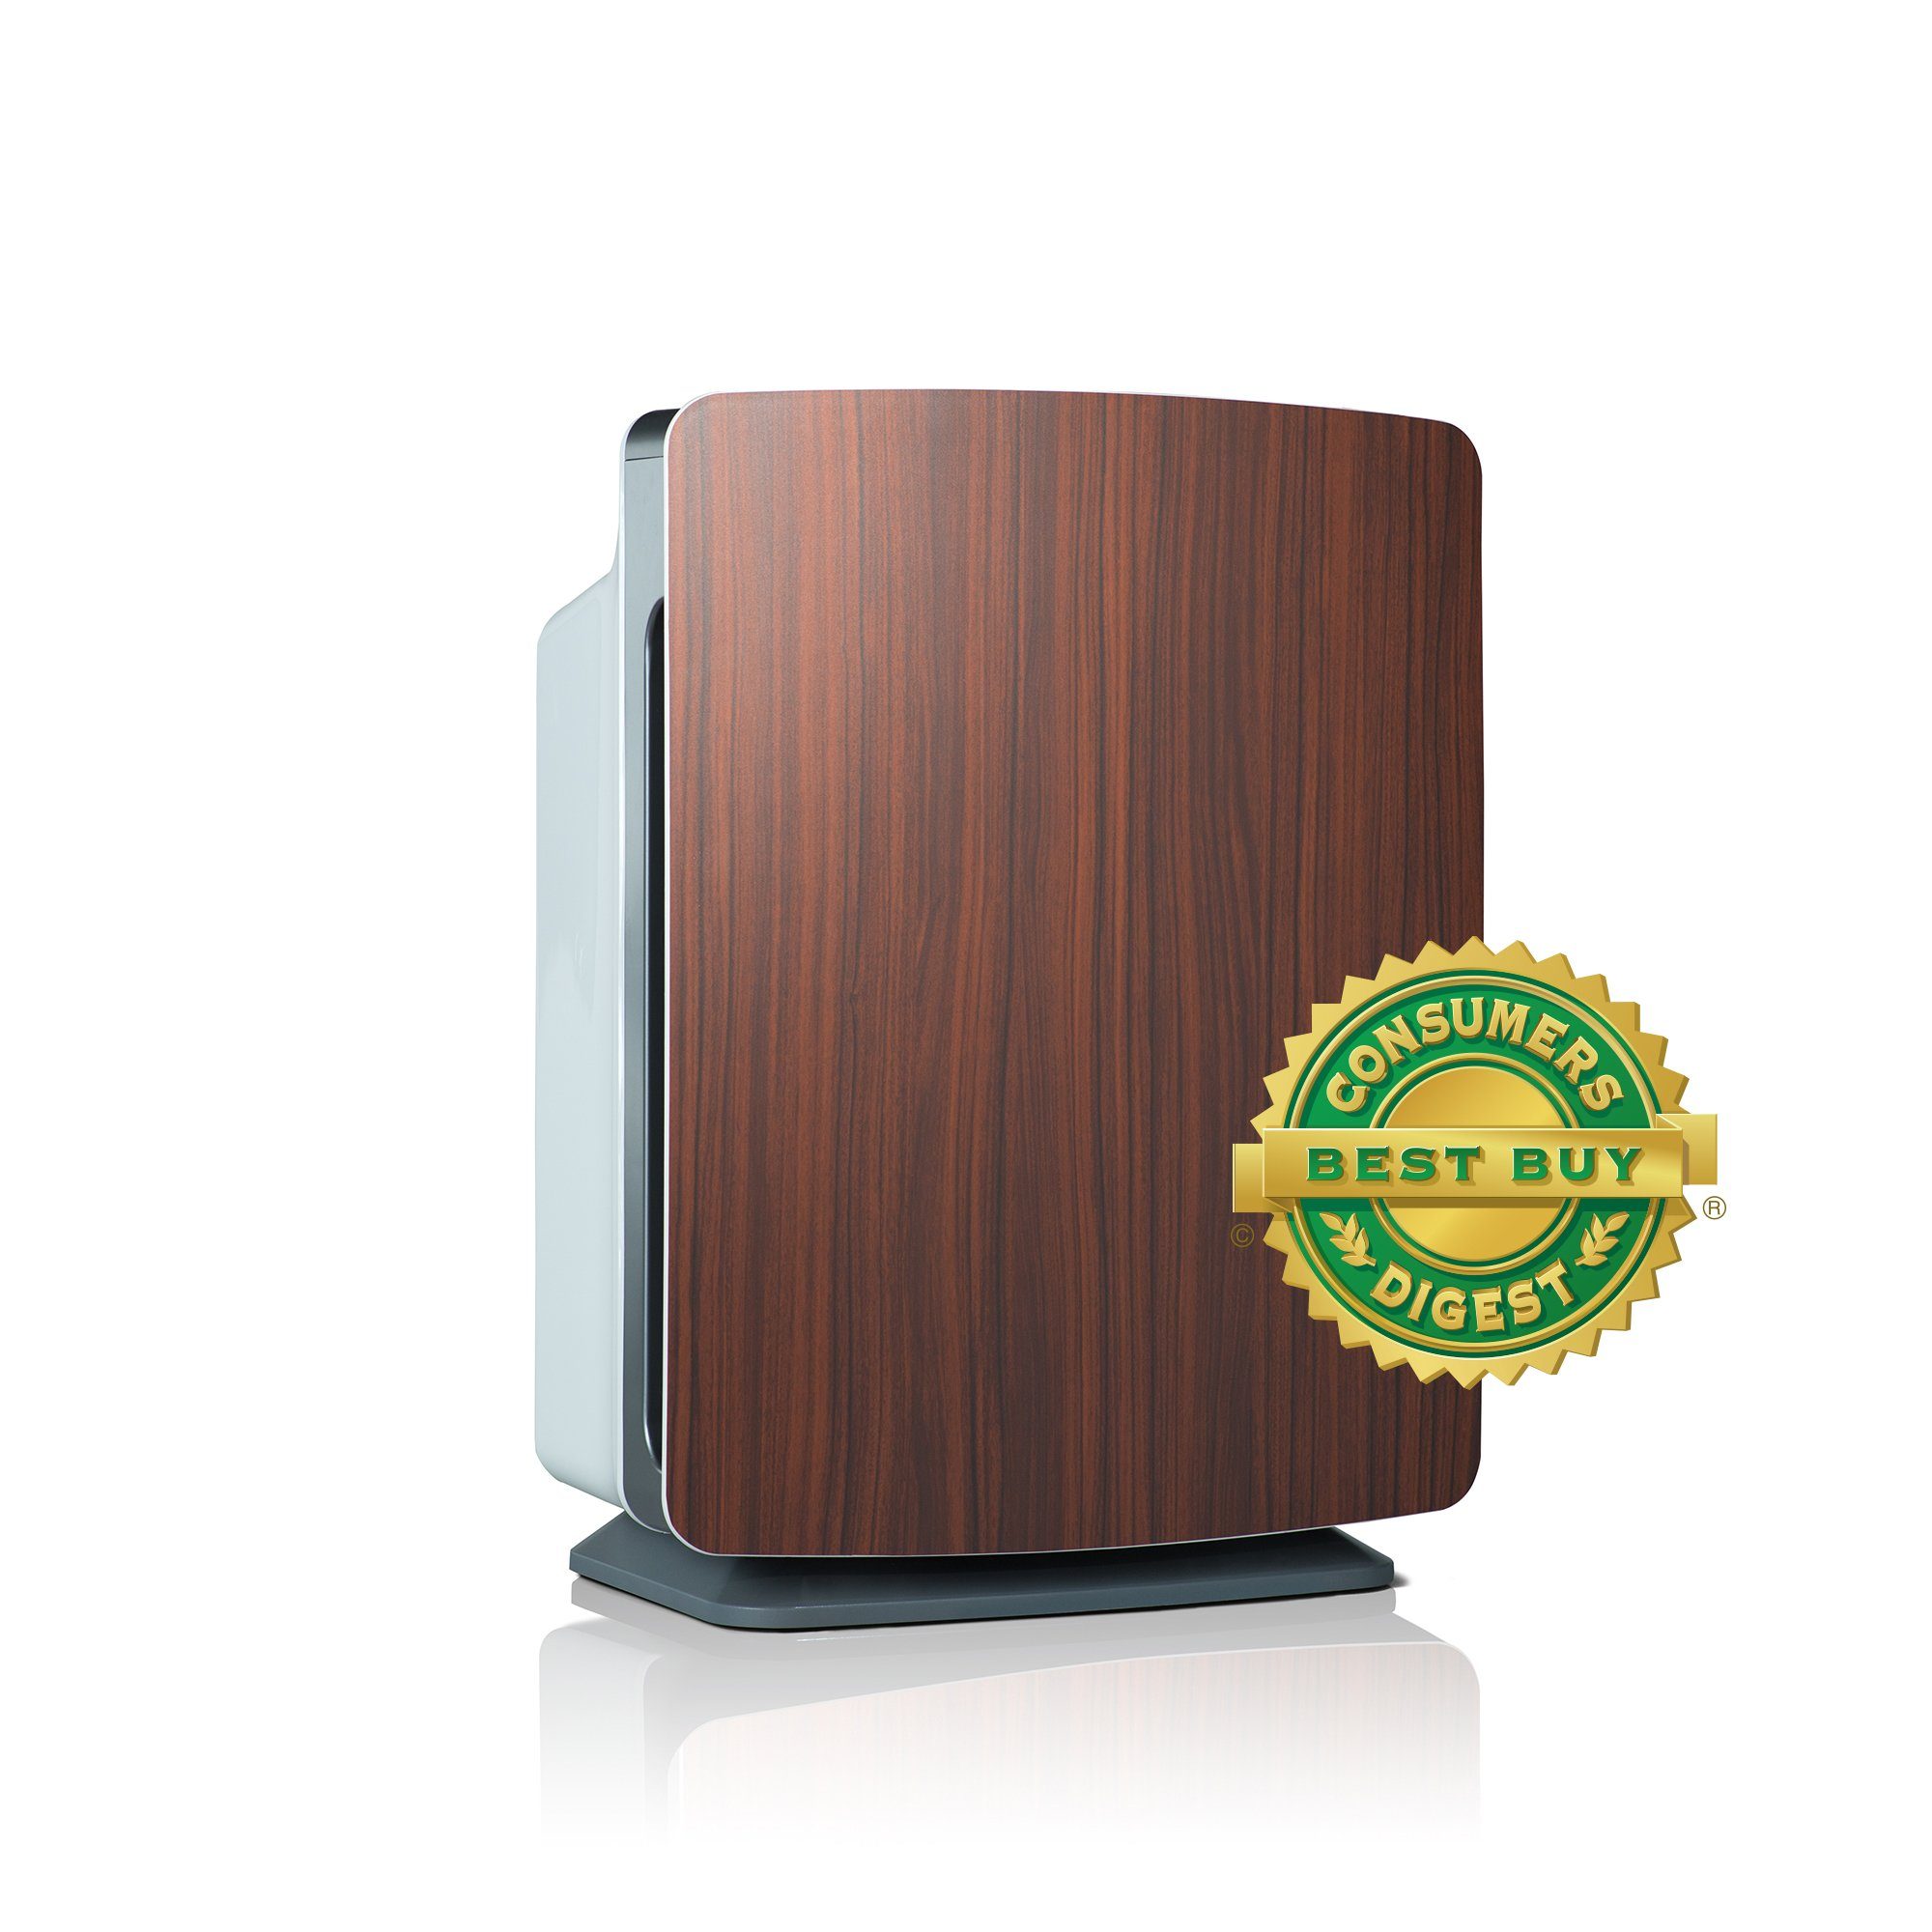 Alen BreatheSmart FIT50 Customizable Air Purifier with HEPA-Pure Filter for Allergies and Dust (Rosewood, 1-Pack)